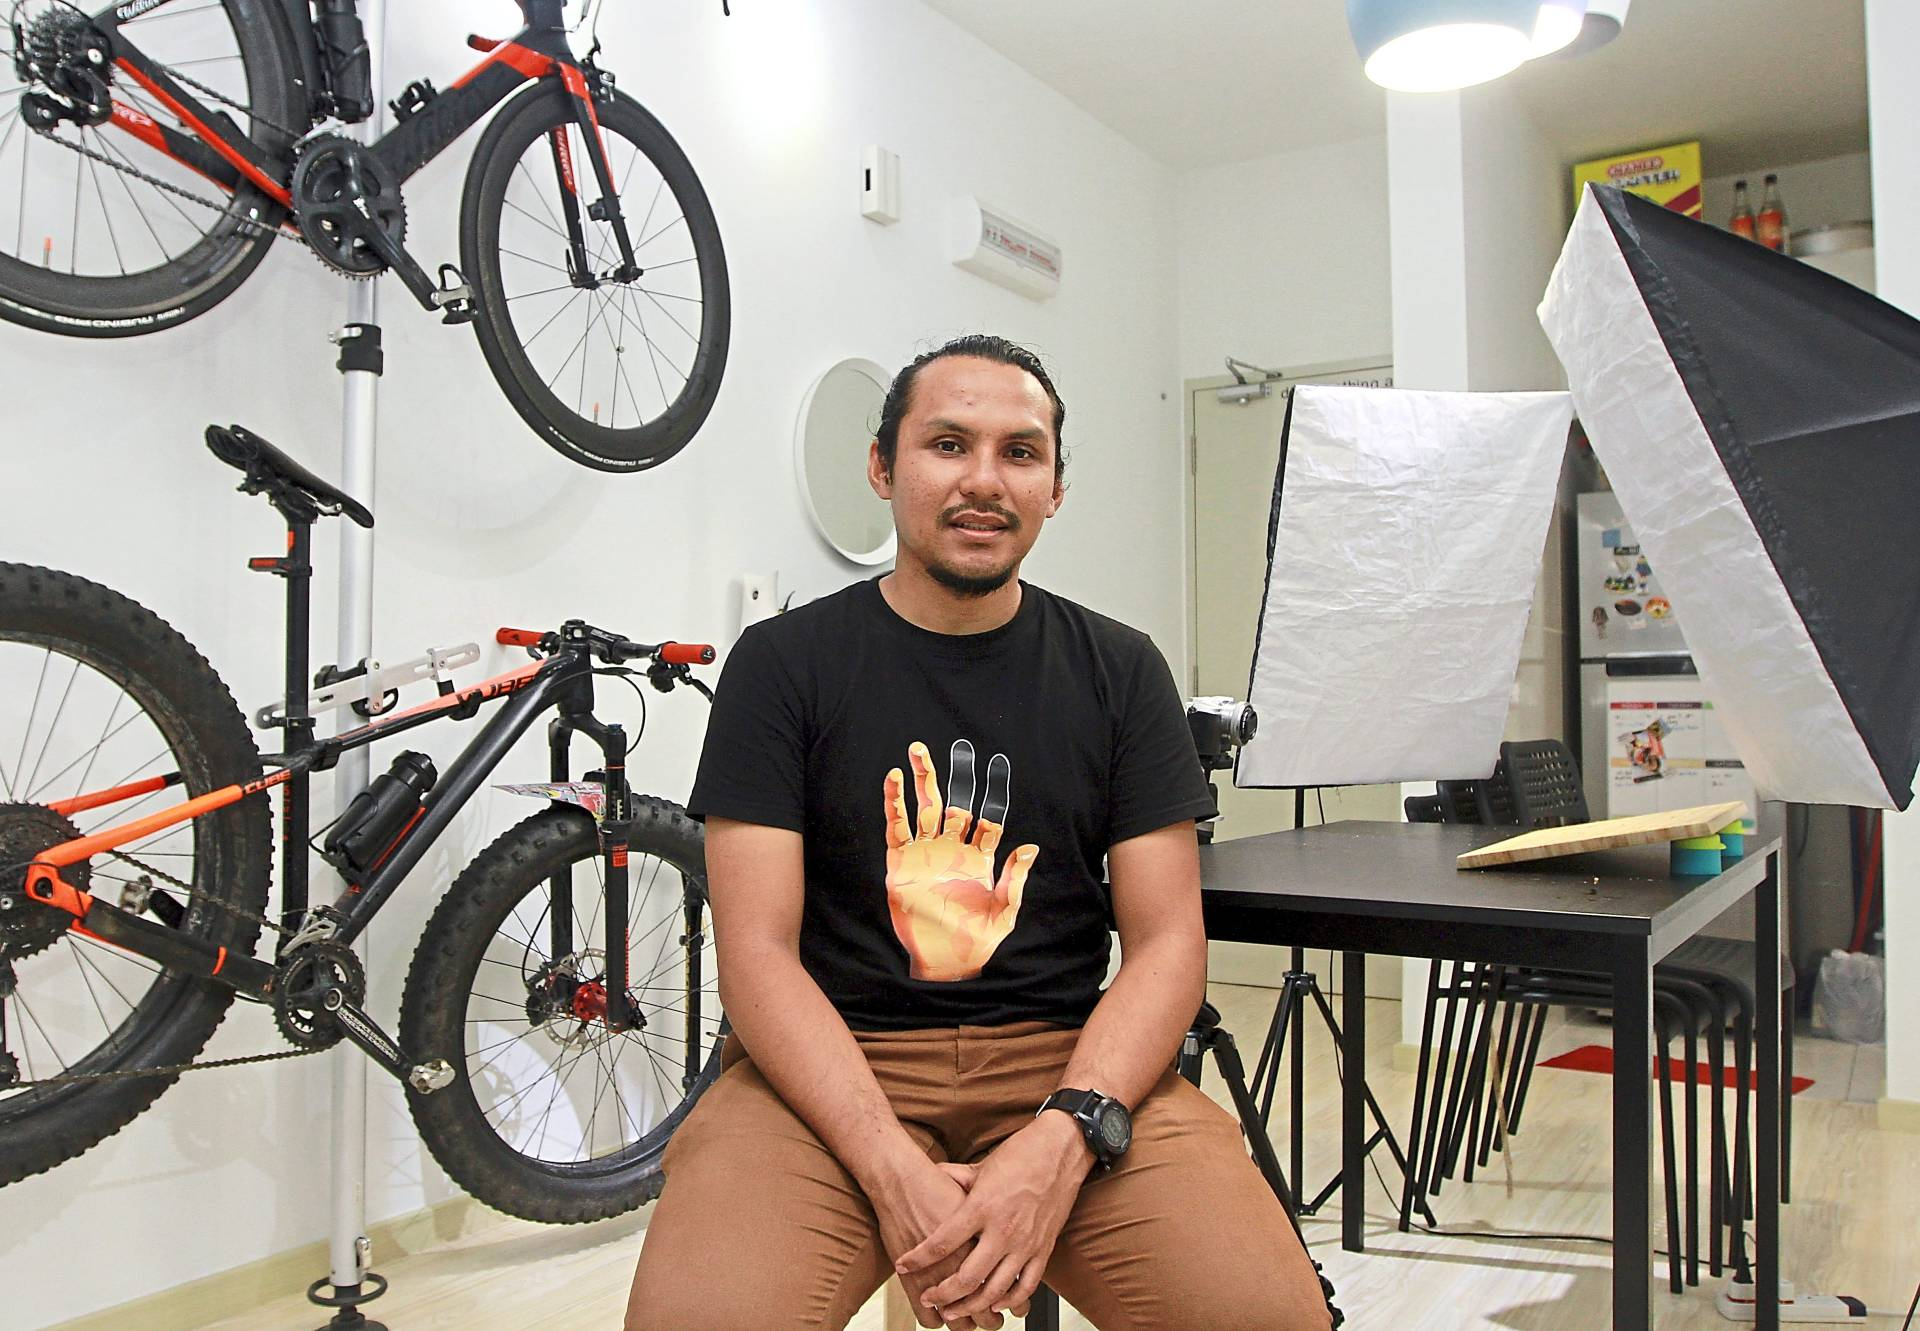 Isaac can eat up to 5,000 calories a meal for his videos but is also a serious athlete who cycles and trains for marathons.